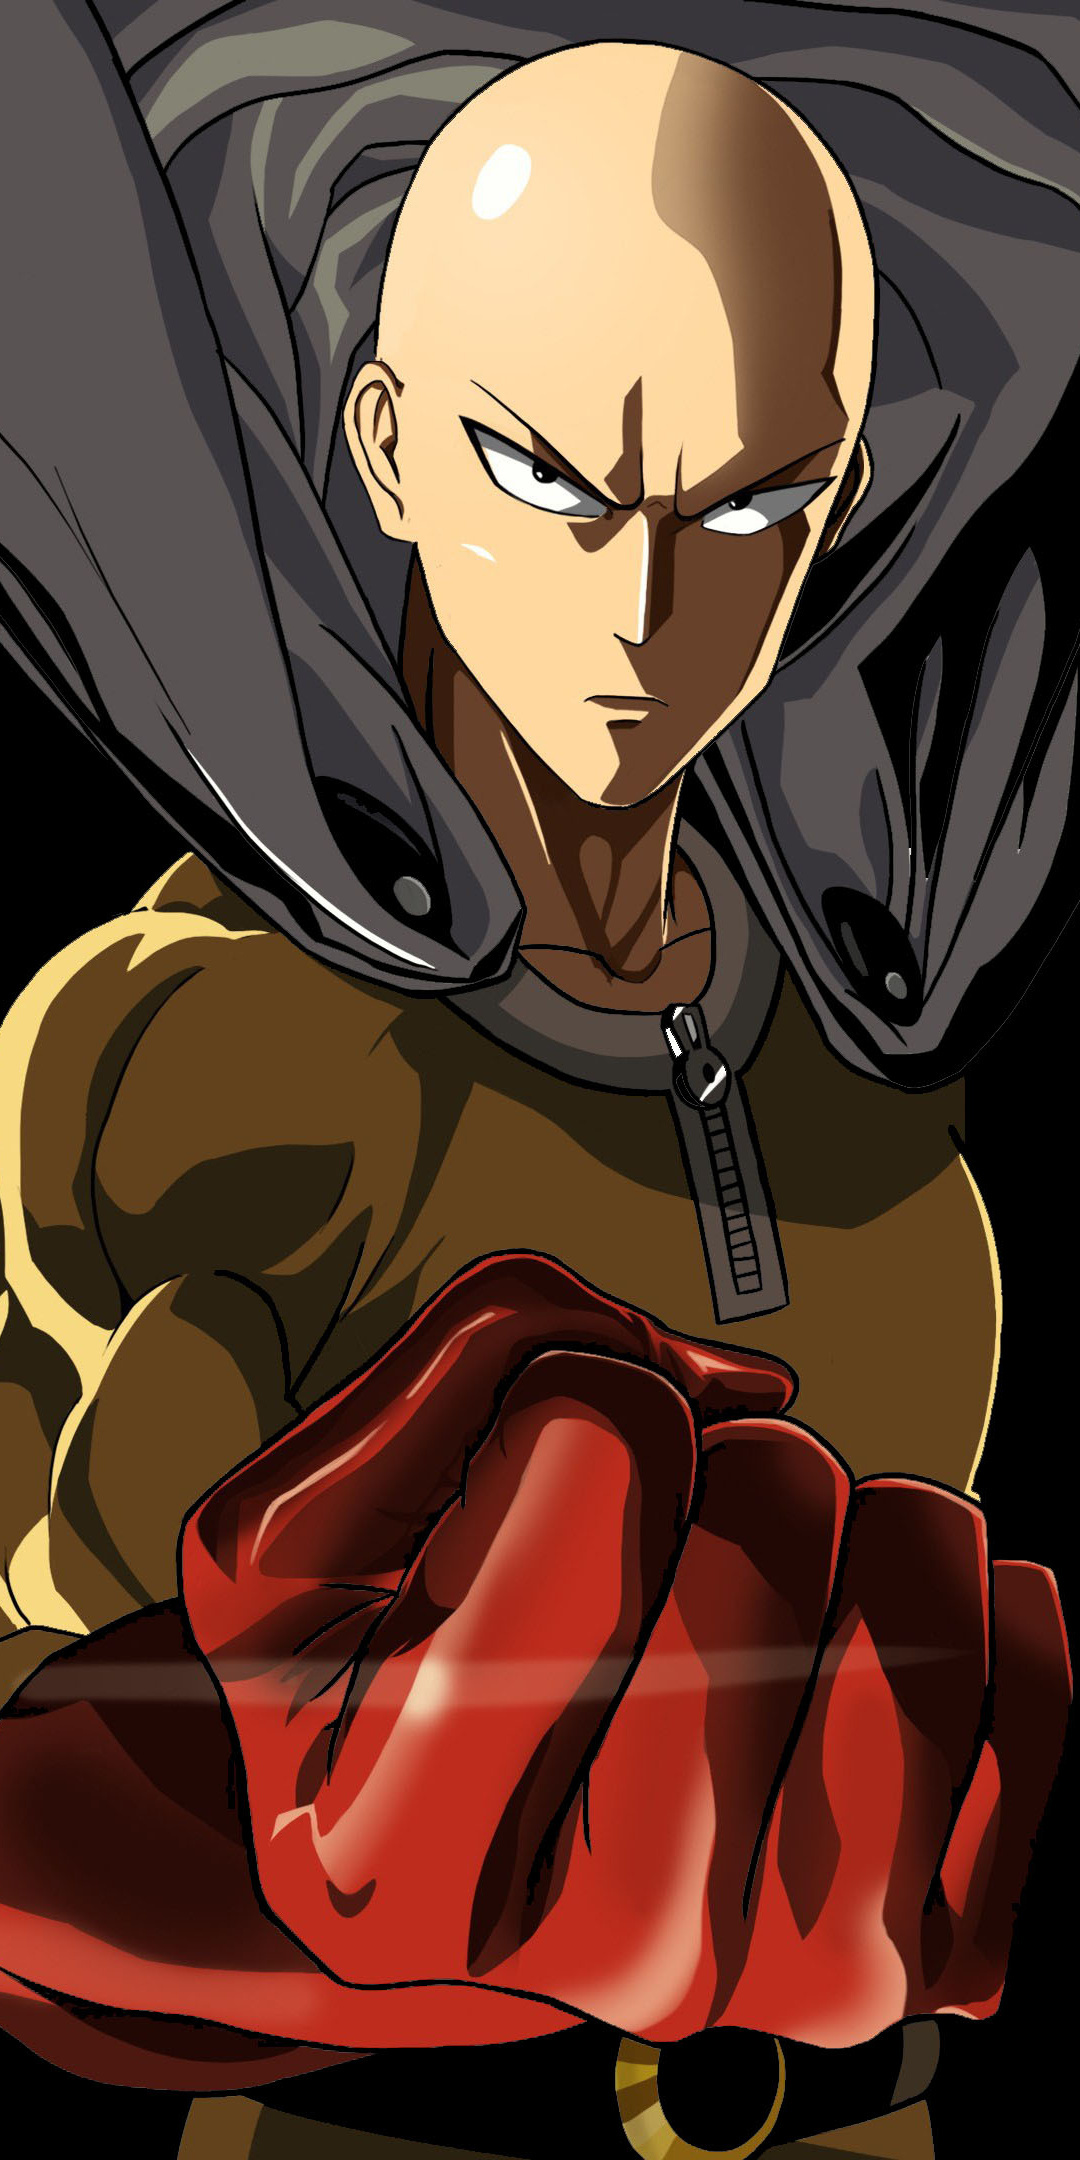 One Punch Man 4k Wallpaper Android Top Anime Wallpaper